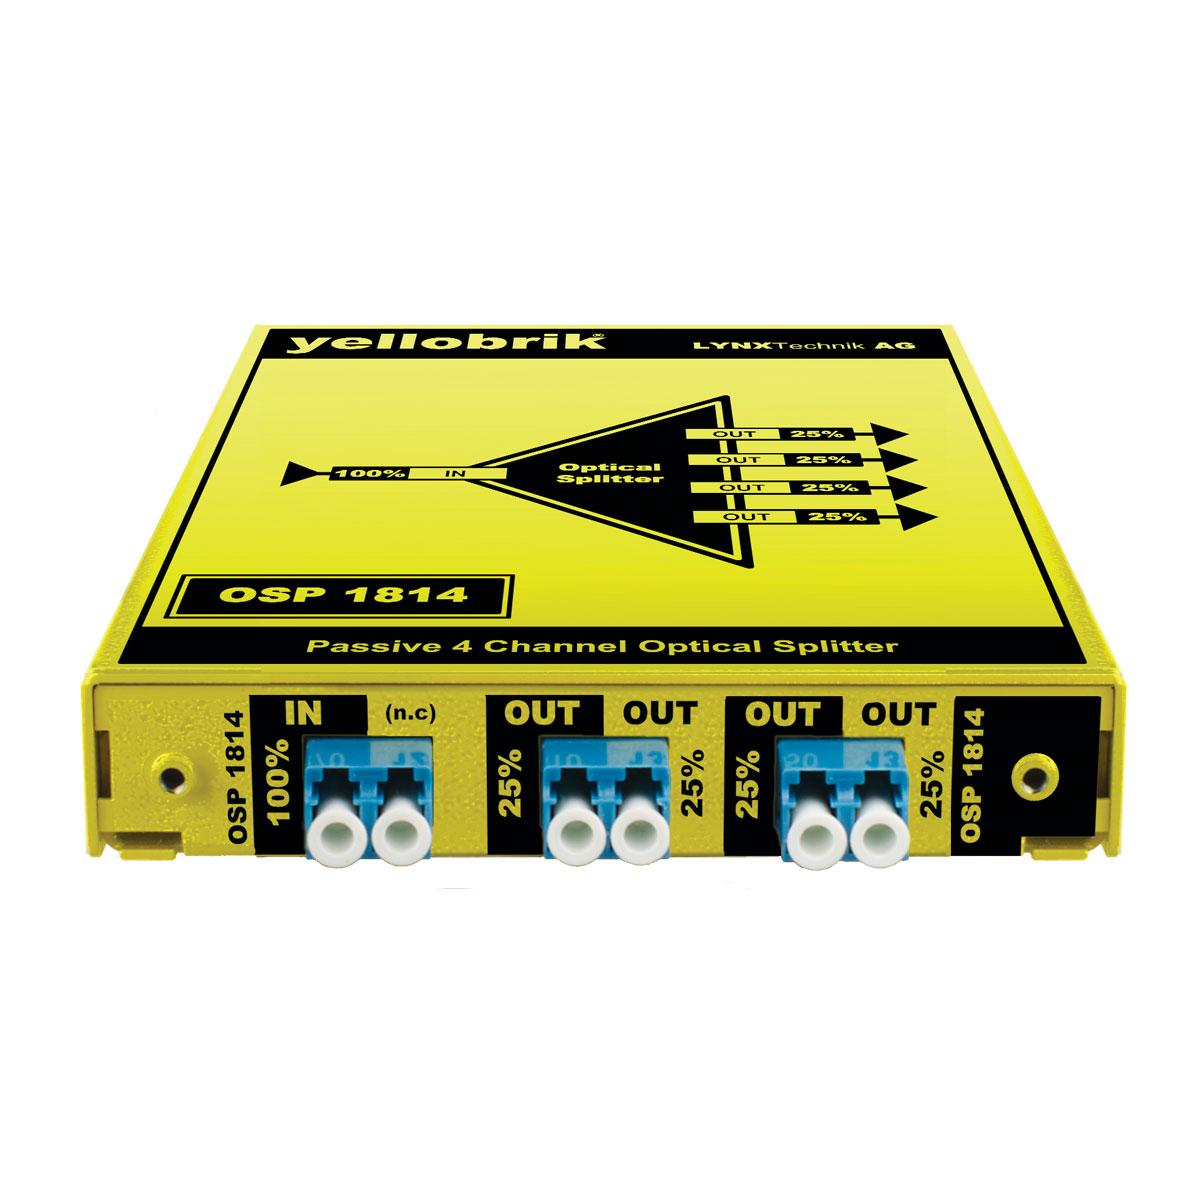 OSP 1814 yellobrik Optical Splitter